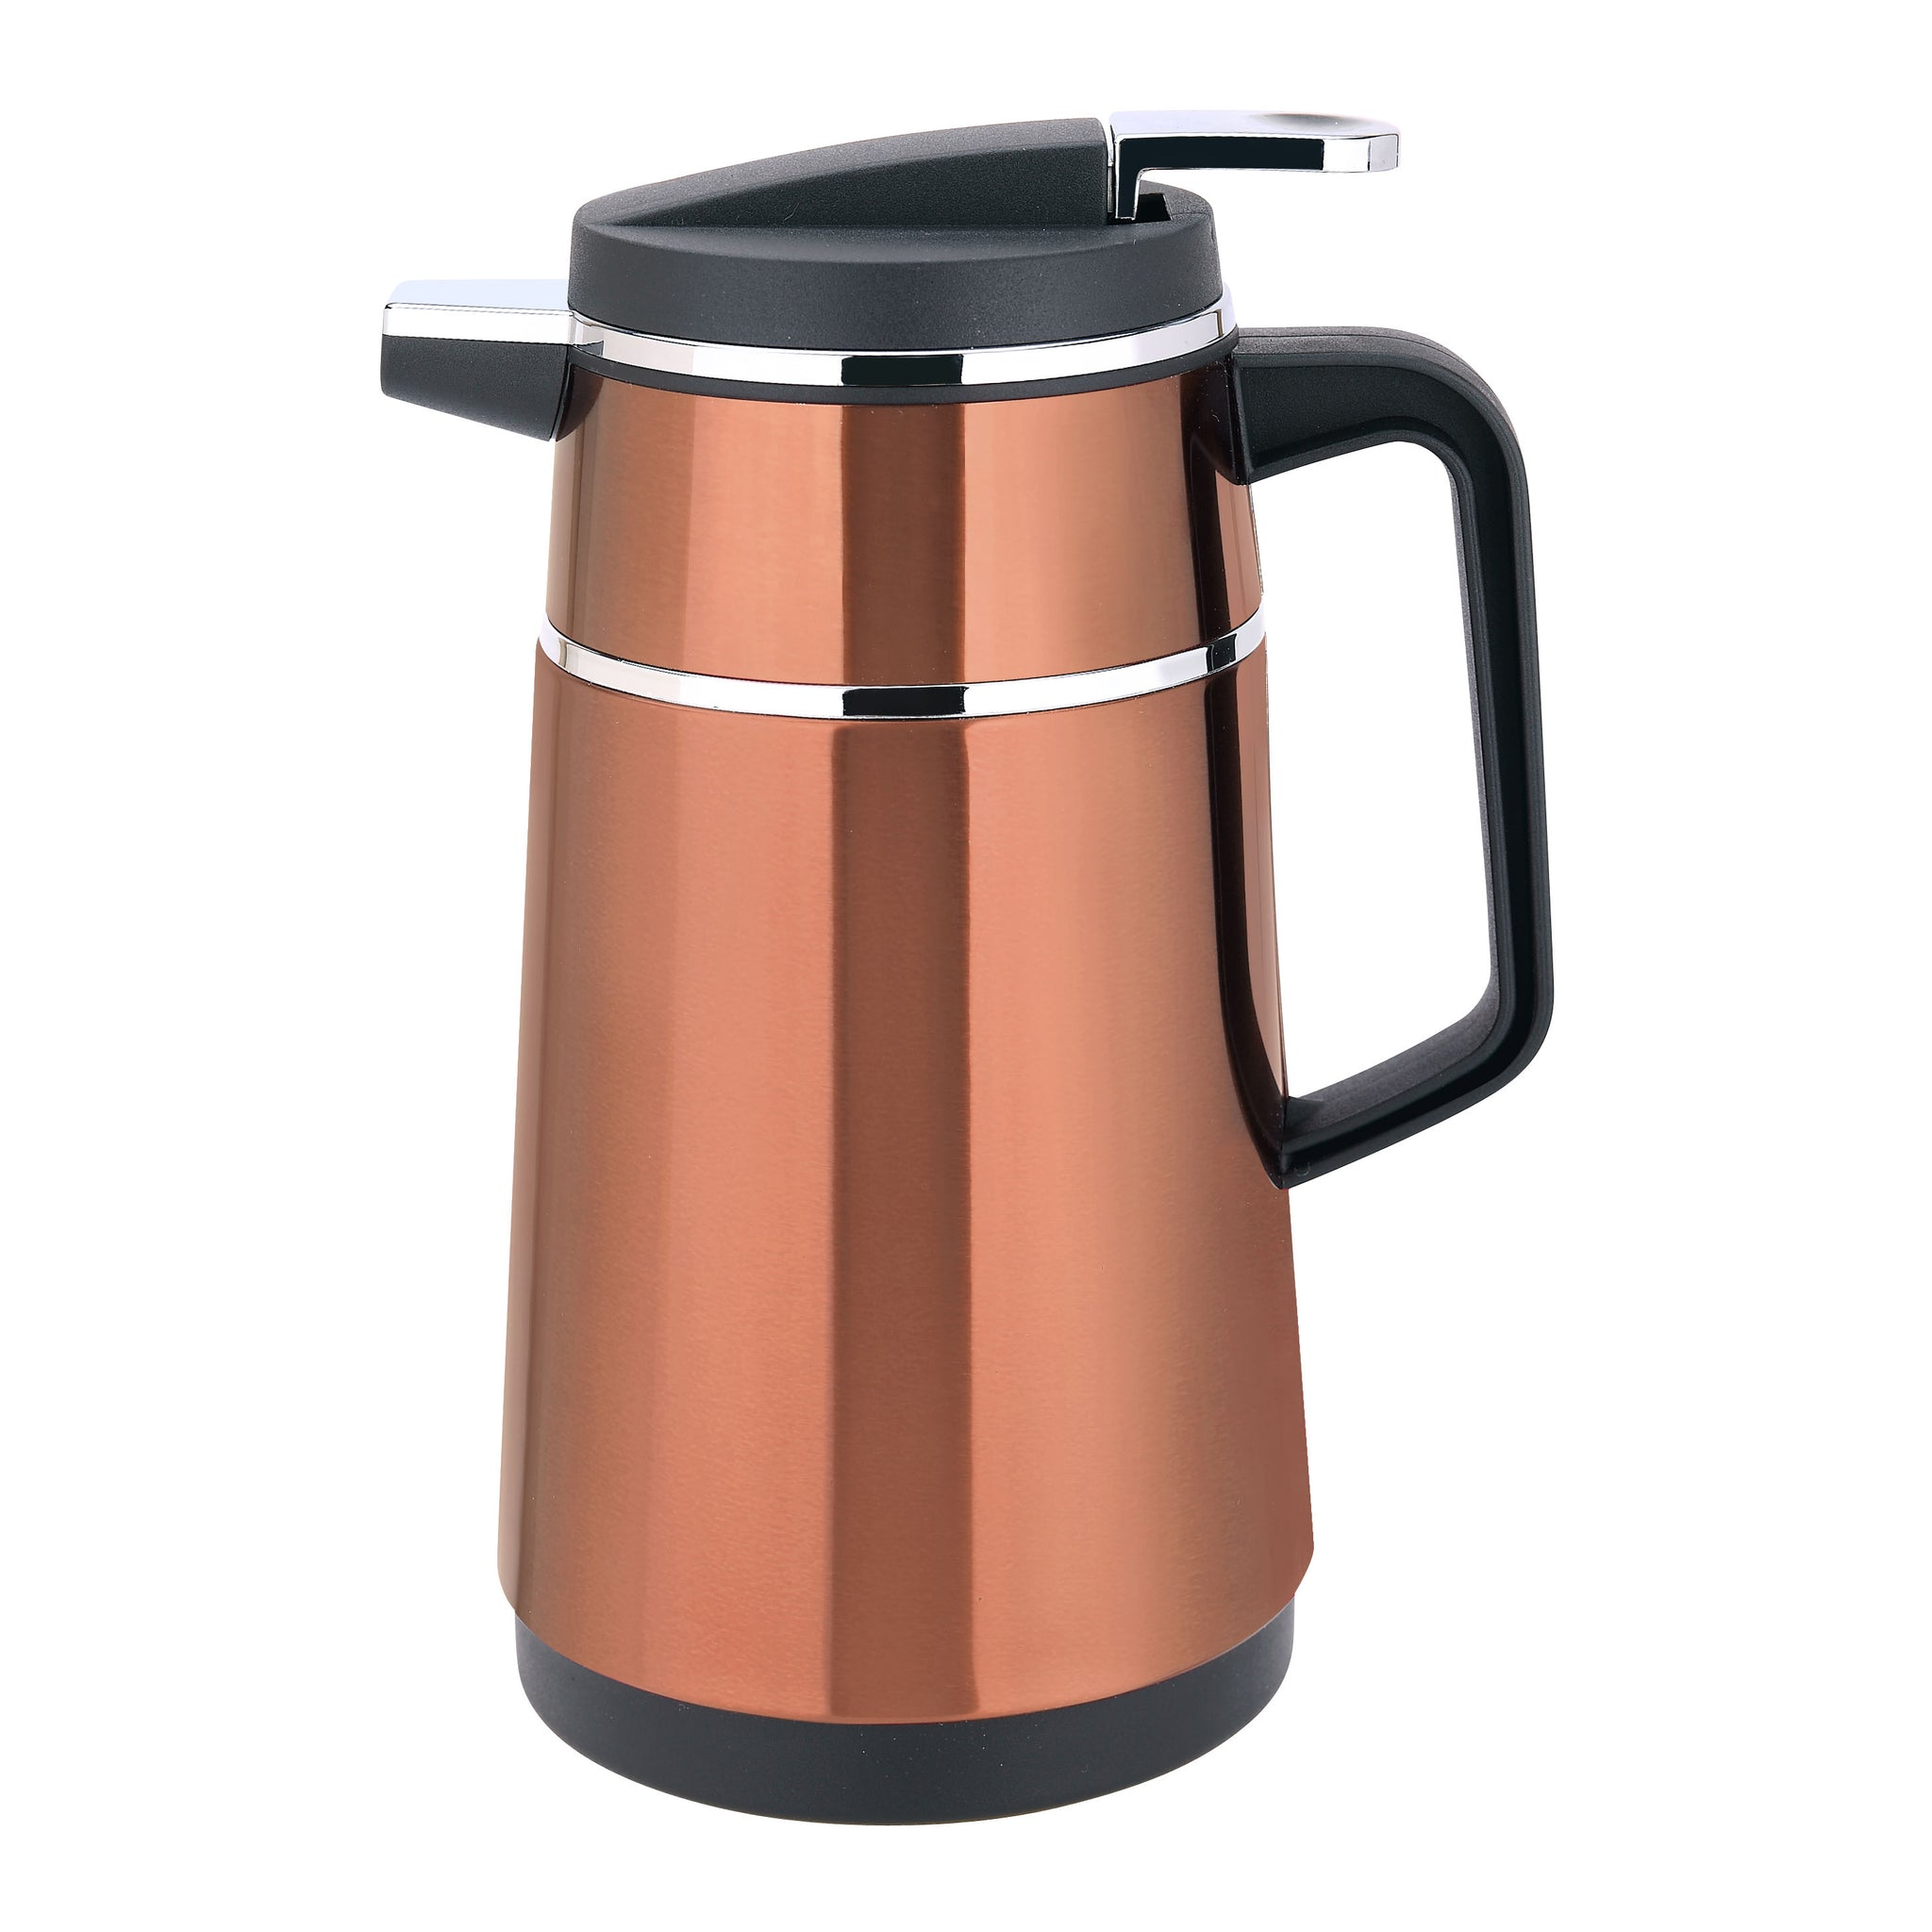 Royalford RF7840 - 1.9 Litre Stainless Steel Sienna Vacuum Flask -  Heat Insulated Thermos for Keeping Hot/Cold Long Hour Heat/Cold Retention, Multi-Walled, Hot Water, Tea, Beverage | Ideal for Social Occasion & Outings (Brown)